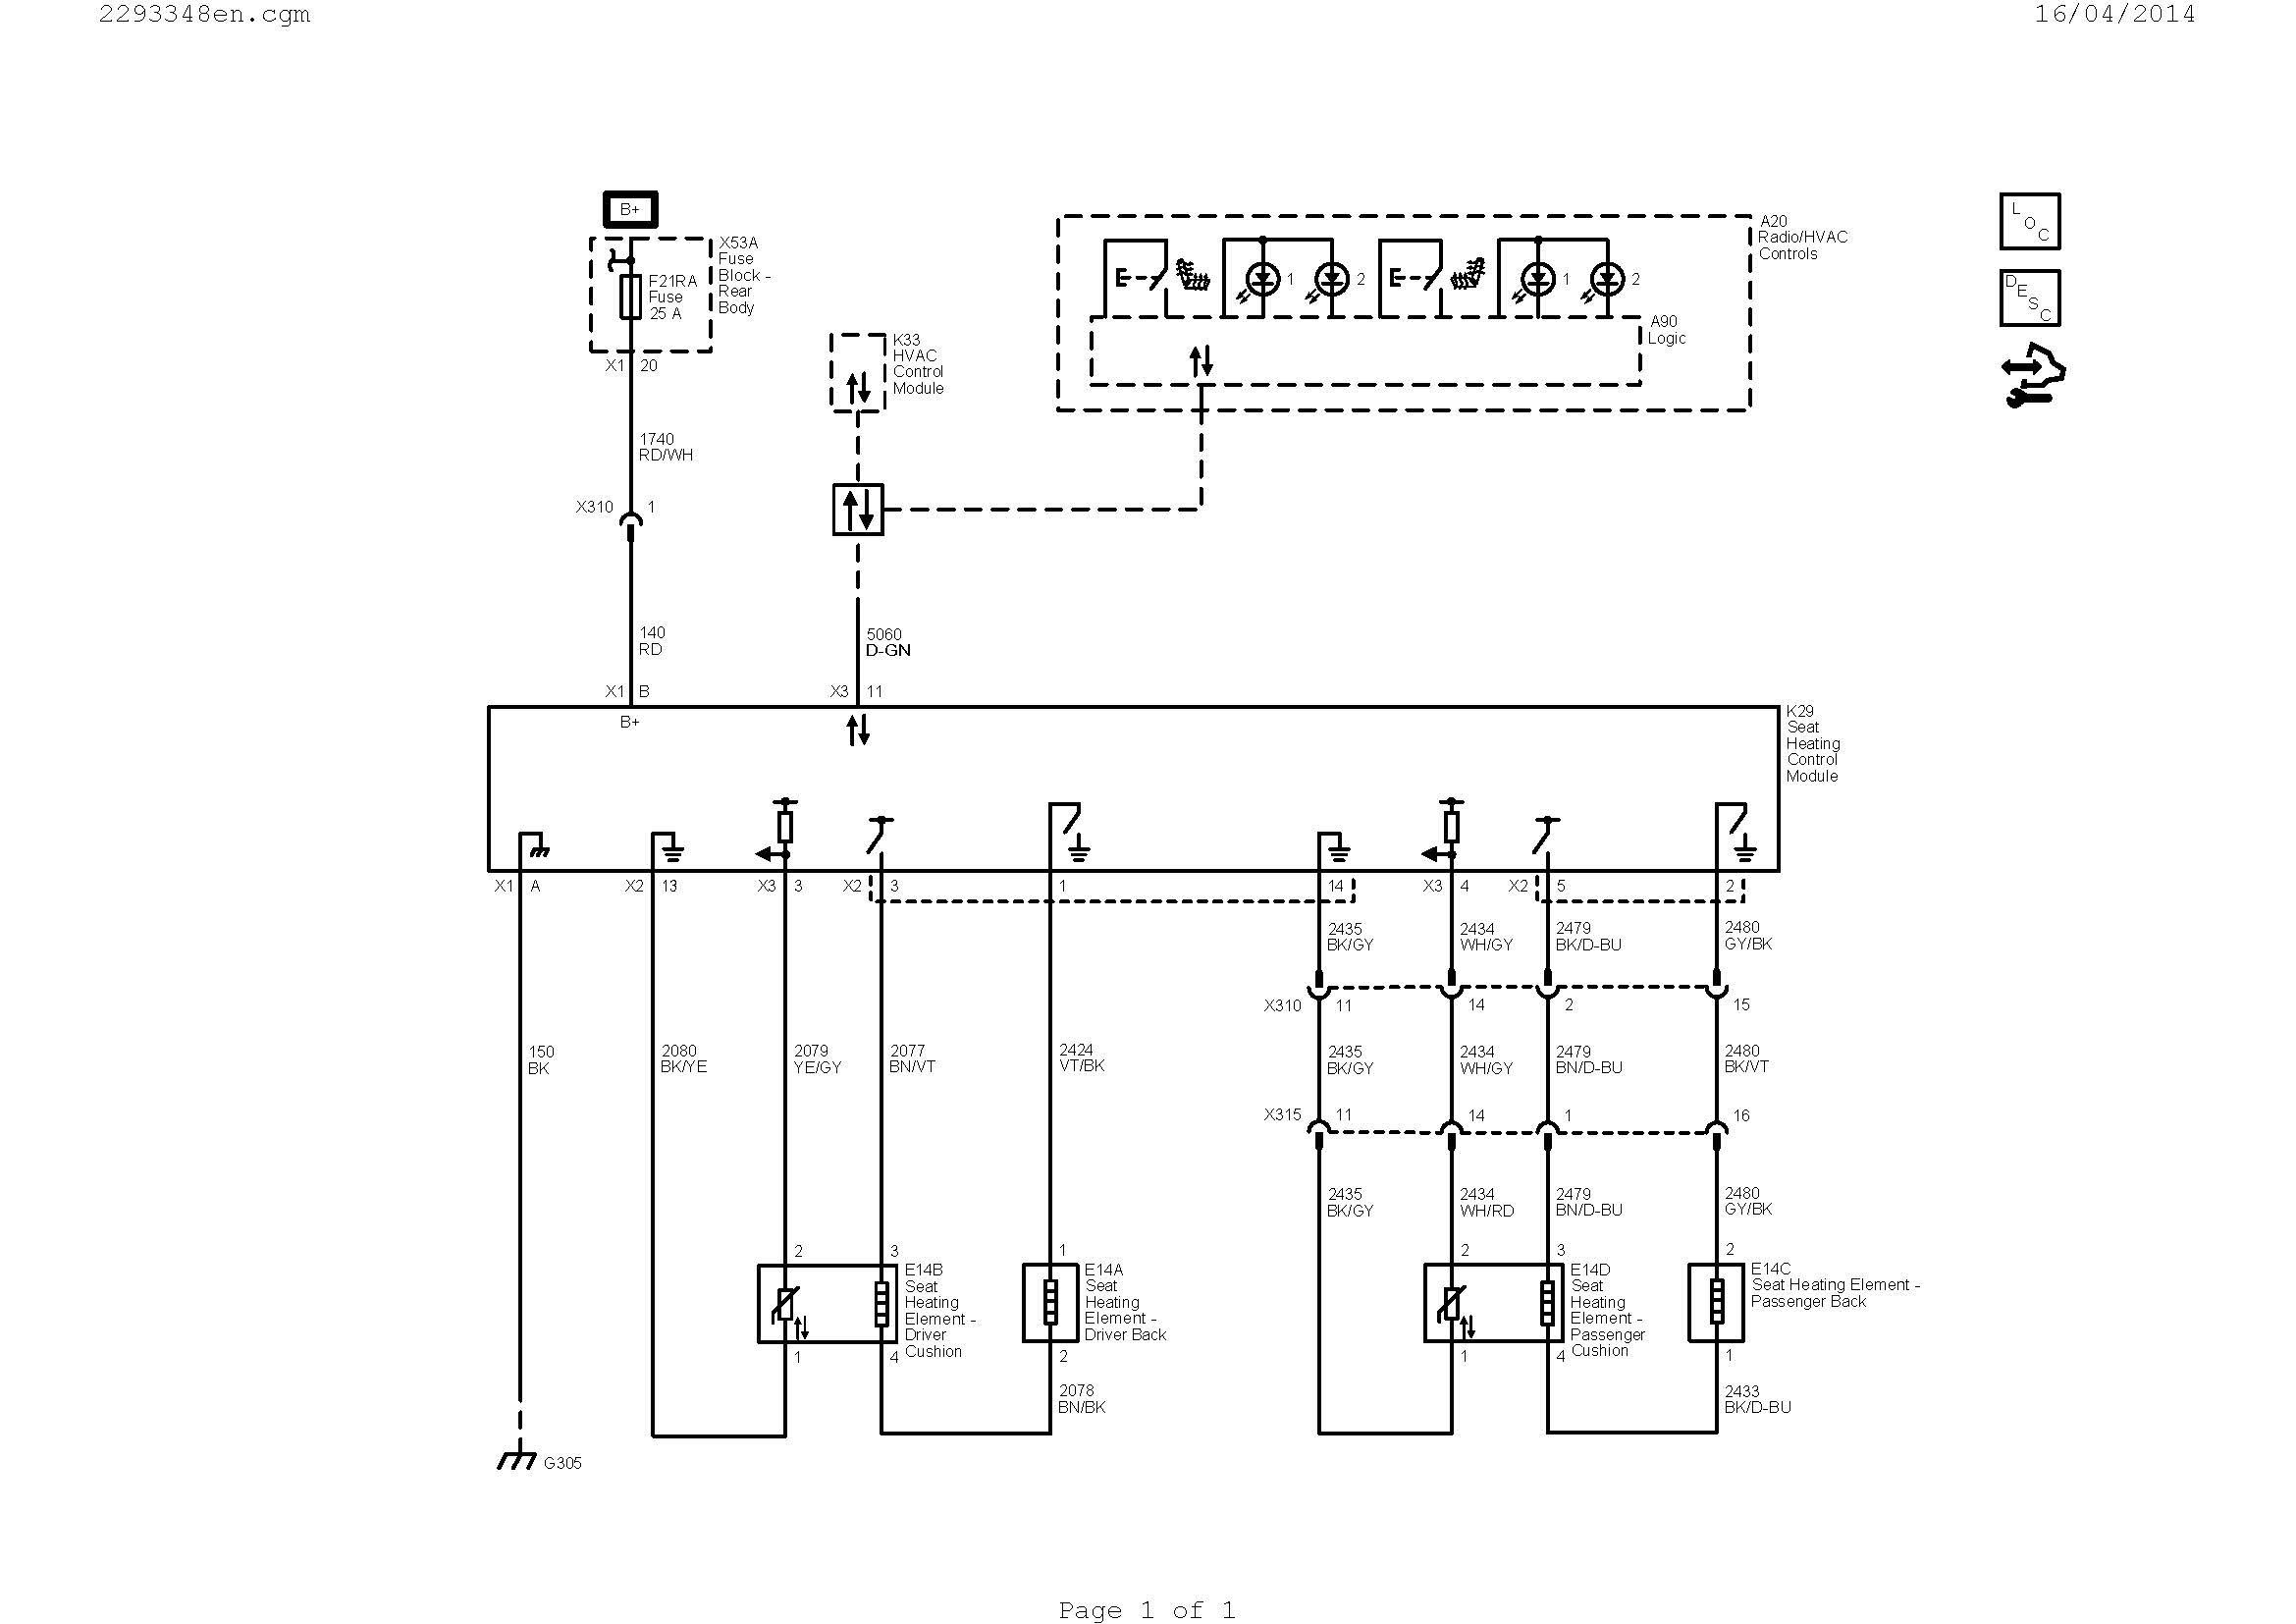 Plug Wiring Diagram - Wiring Diagram Schematic New Wiring Diagram Guitar Fresh Hvac Diagram Best Hvac Diagram 0d 10o